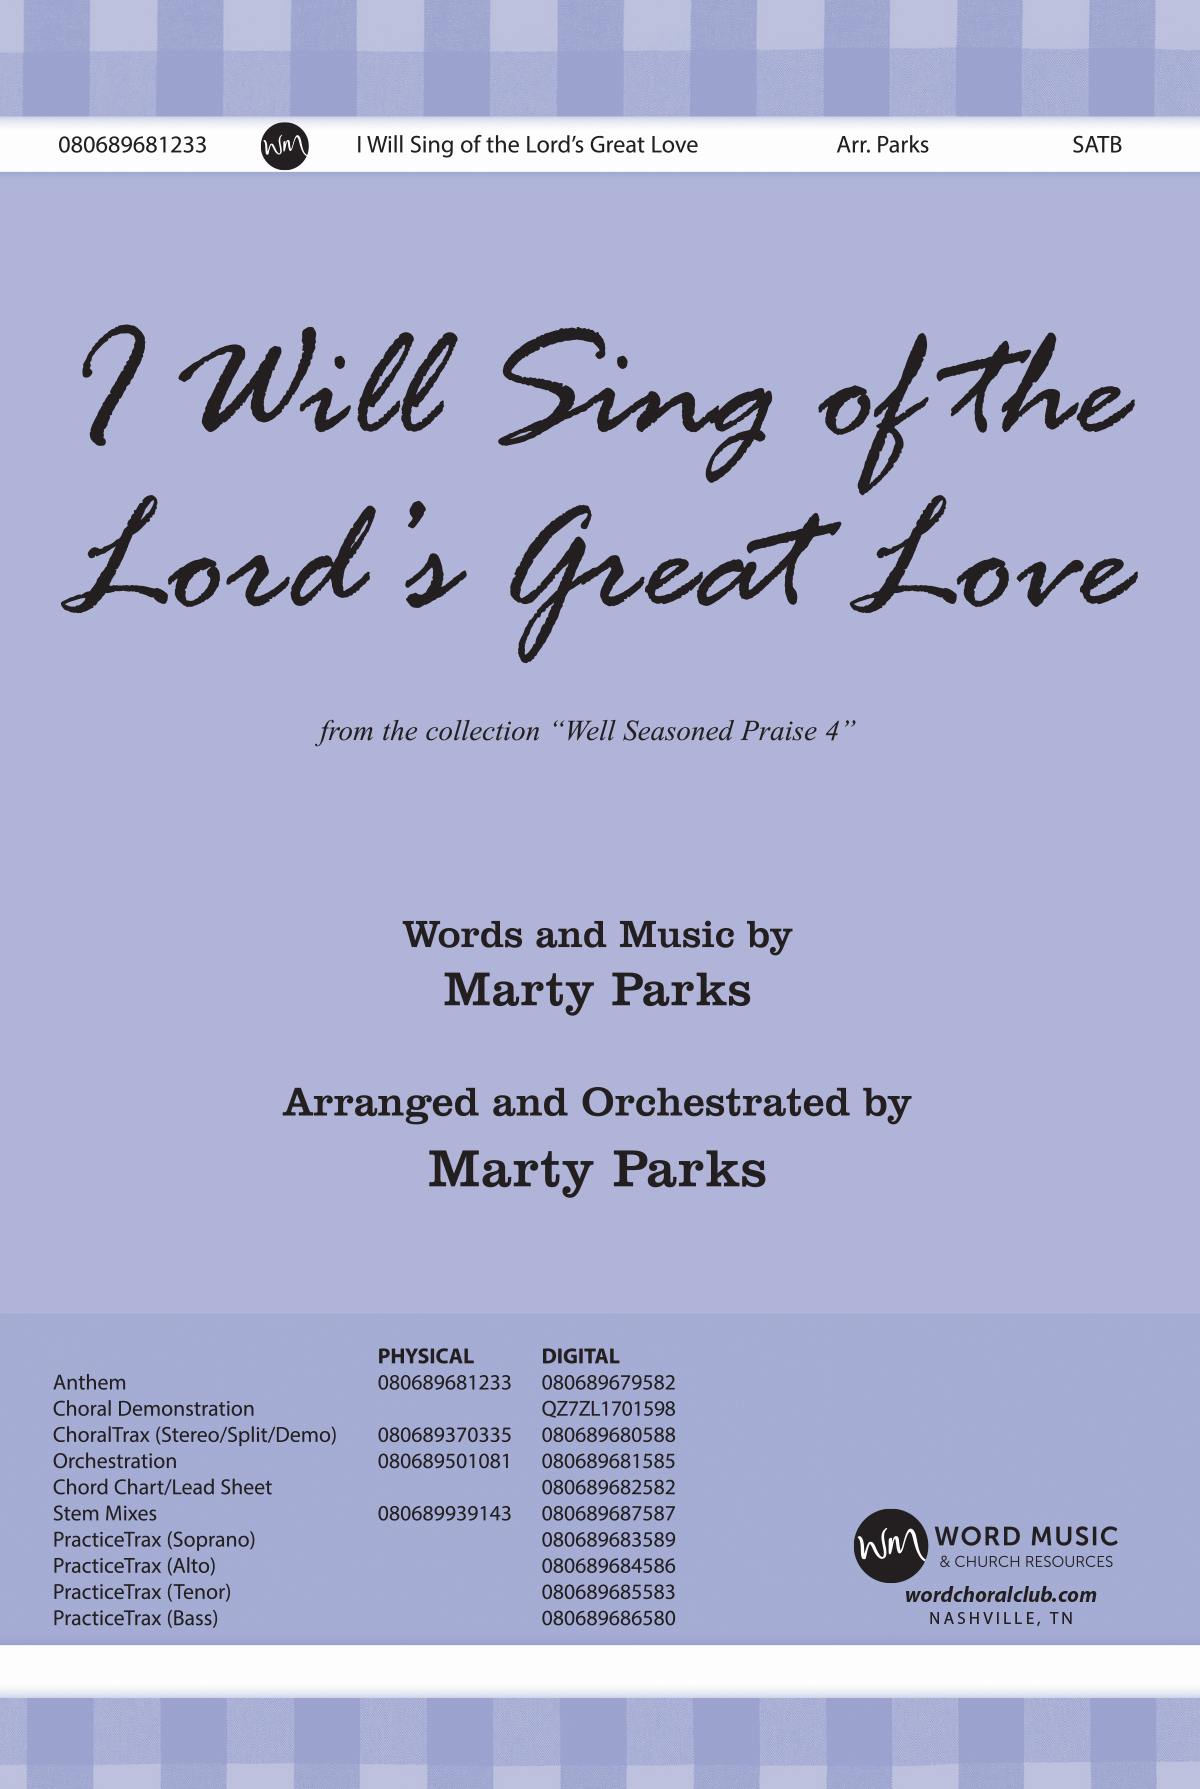 I Will Sing of the Lord's Great Love